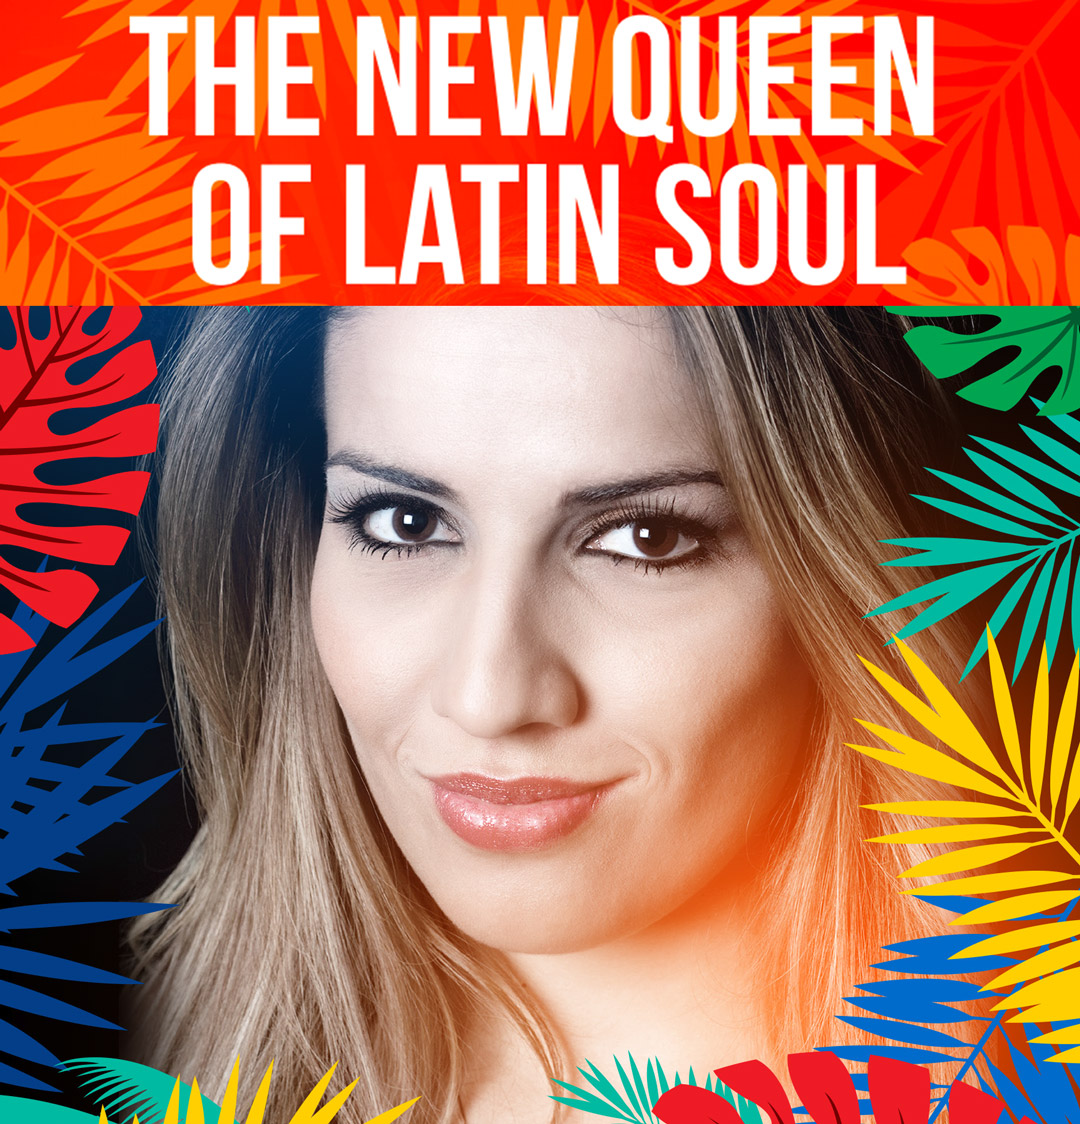 Mariana-The_New_Queen_of_Latin_Soul